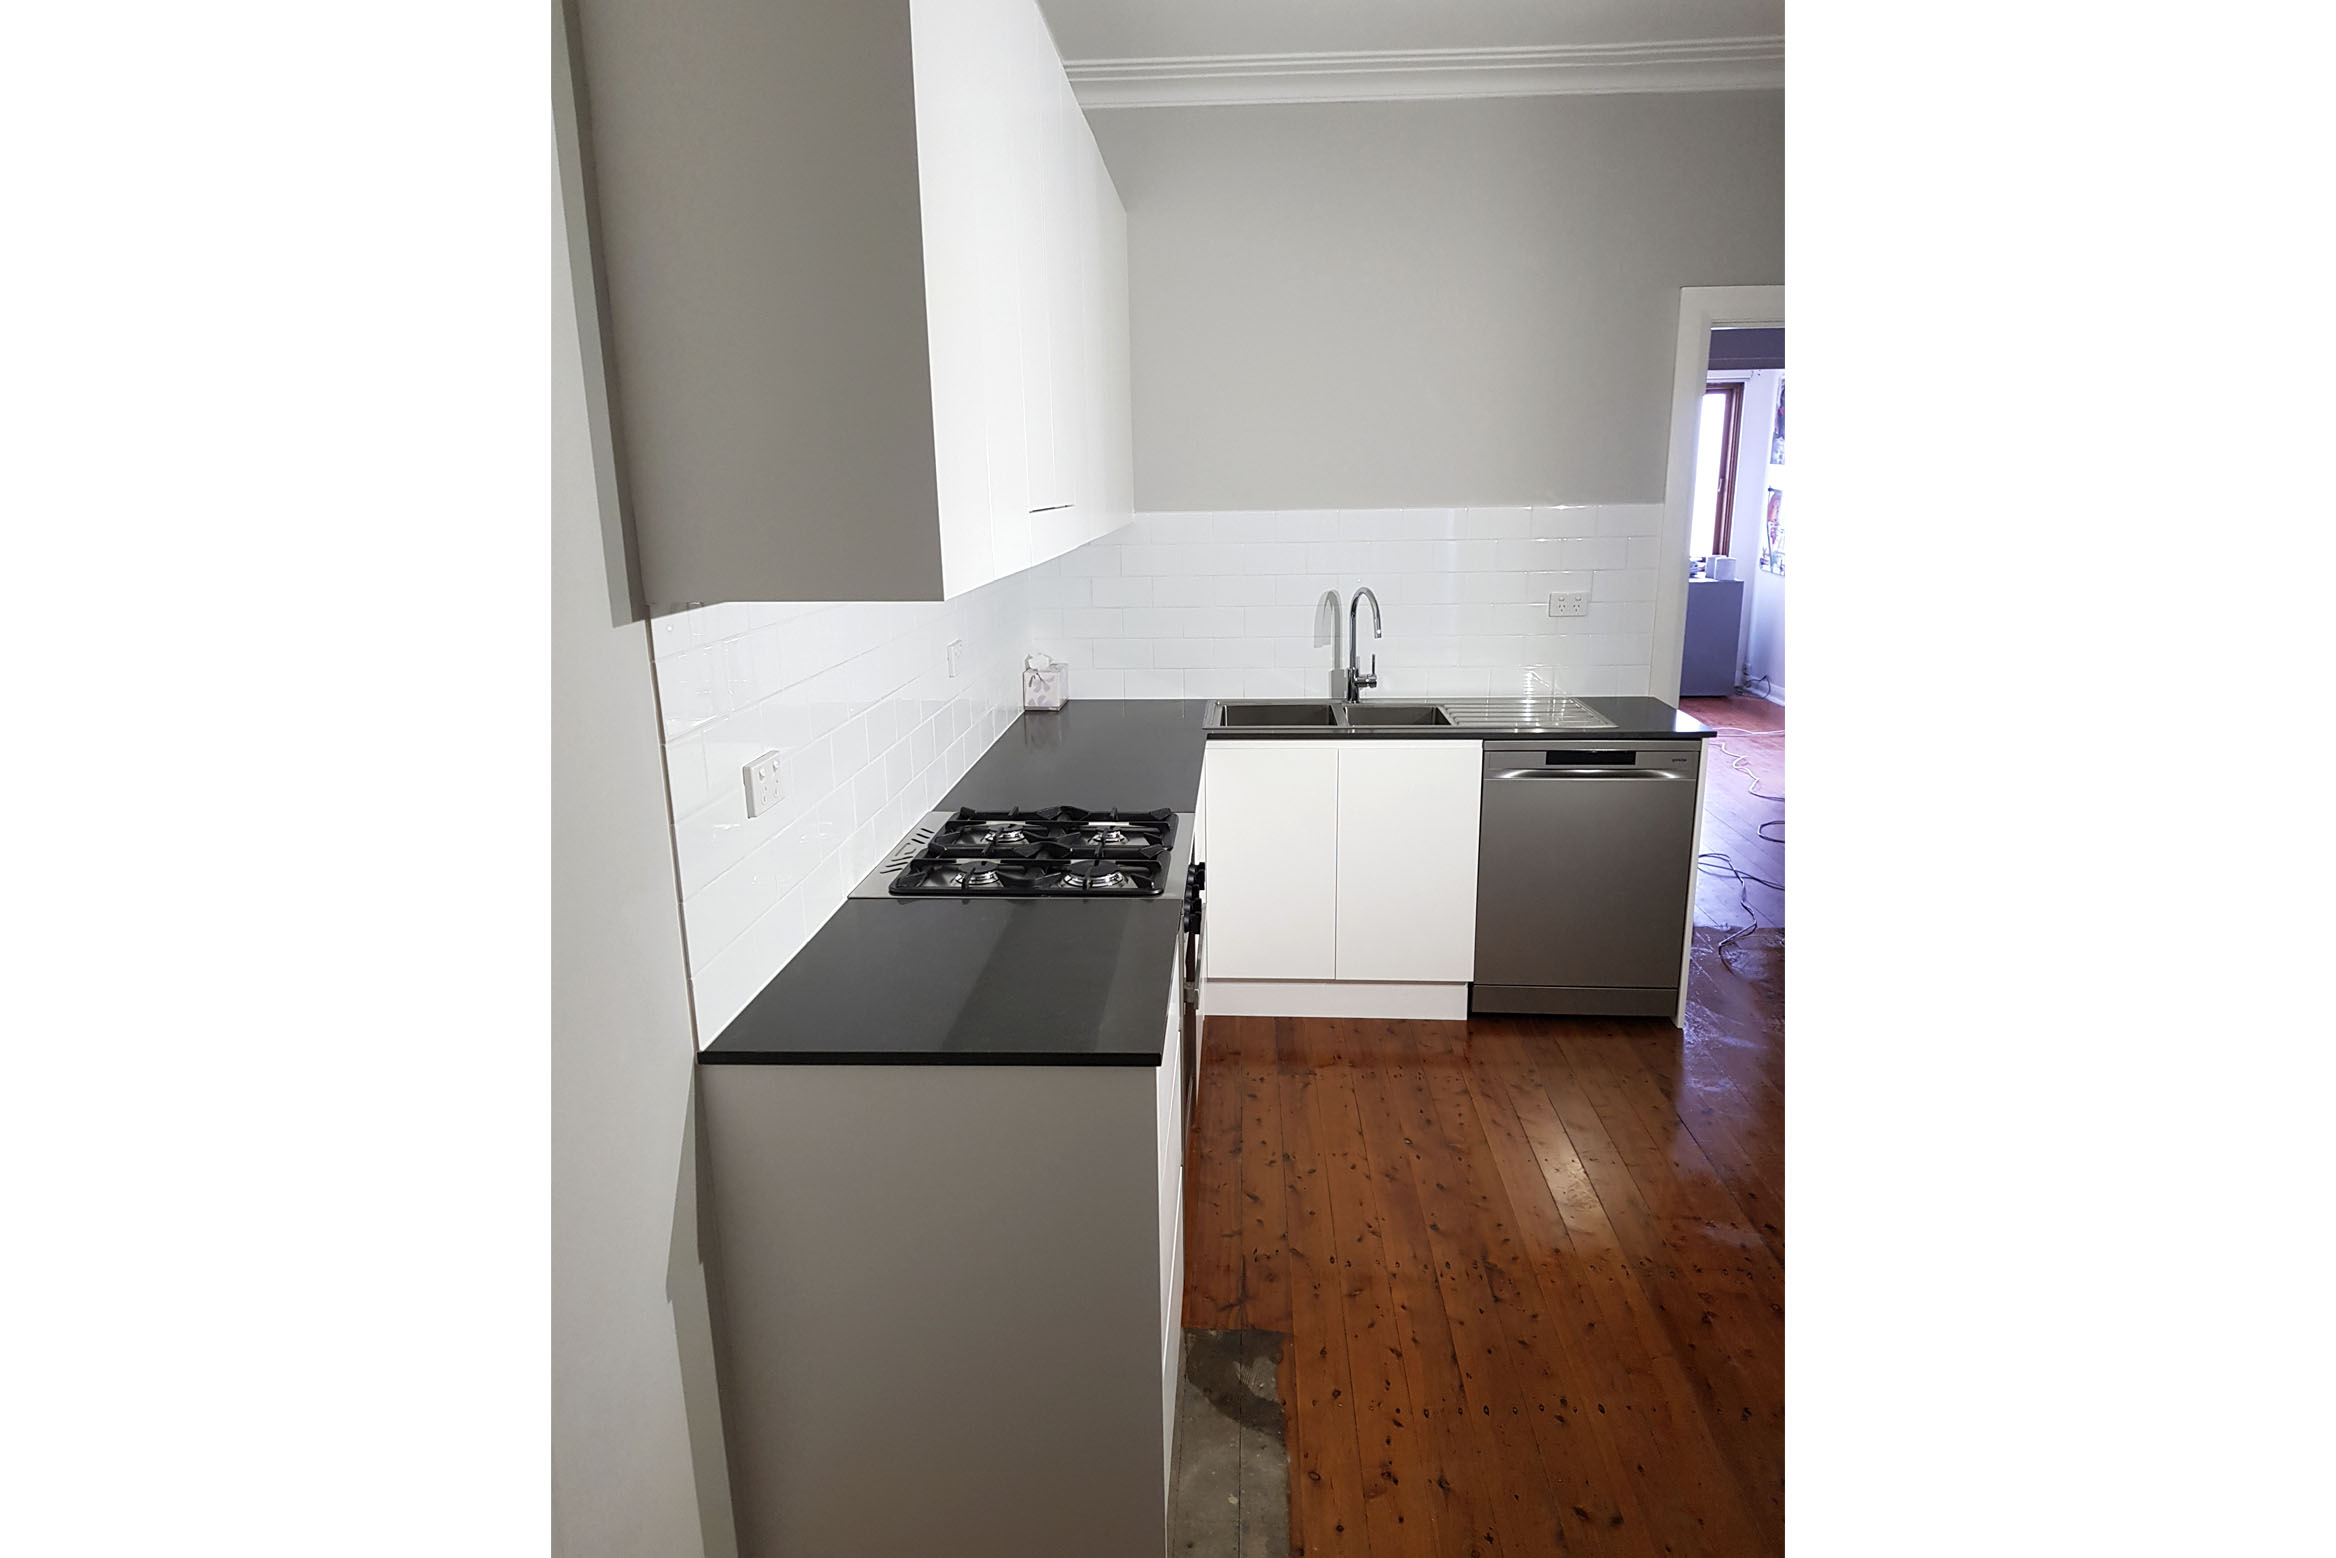 City-Kitchens_Sydney_New-Kitchen_VAUCLUSE-3_09B.jpg